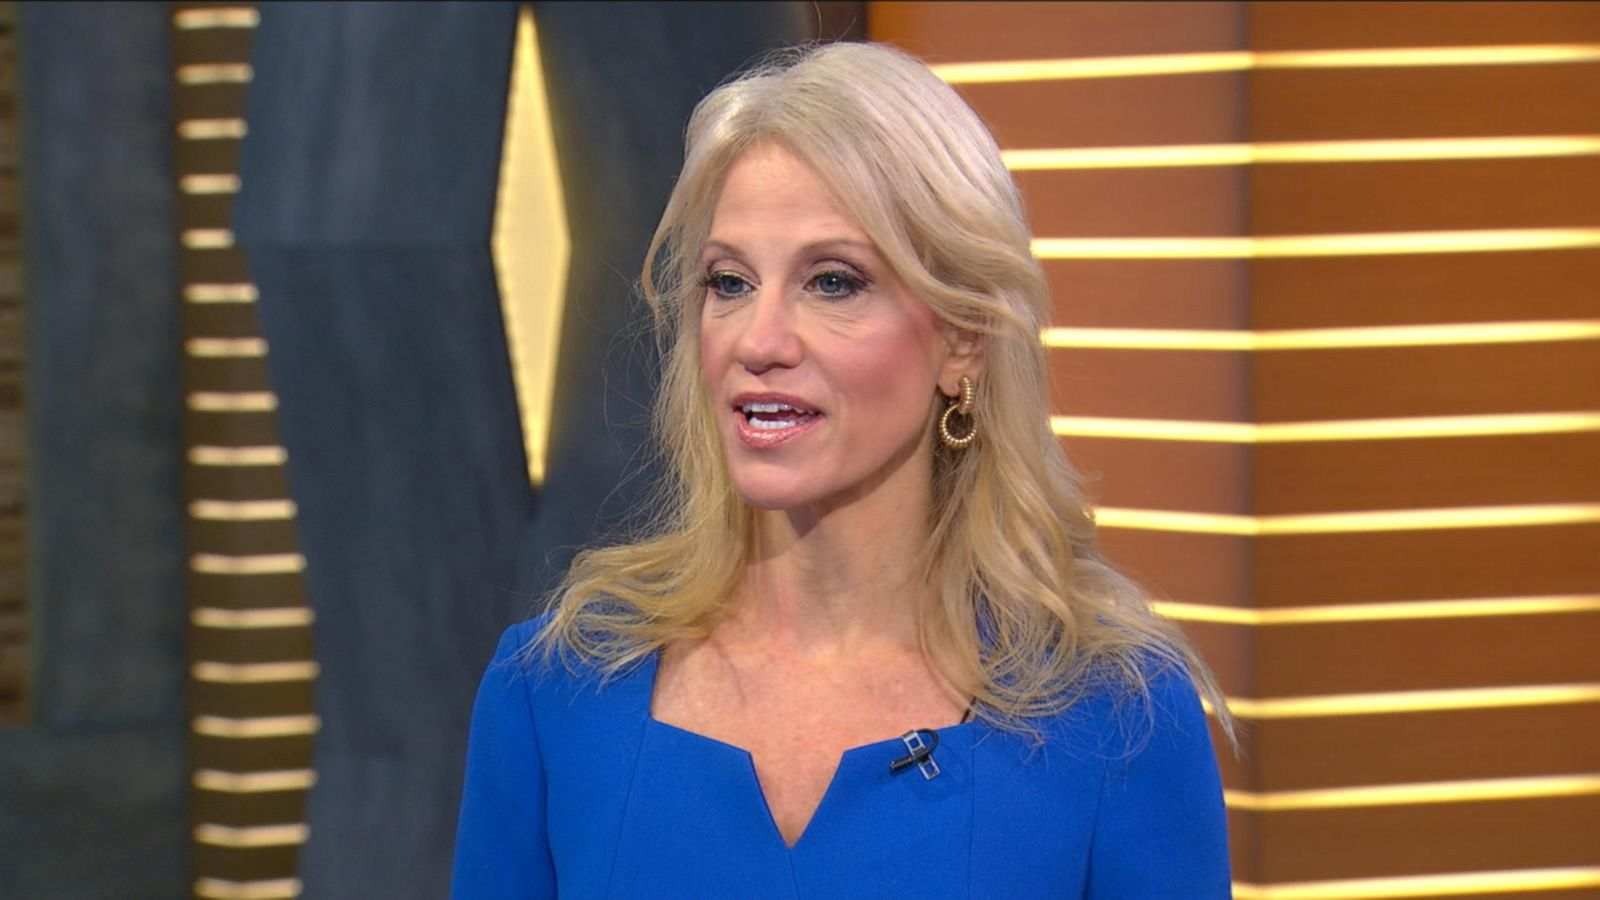 VIDEO: Kellyanne Conway Responds to New Russia Claims